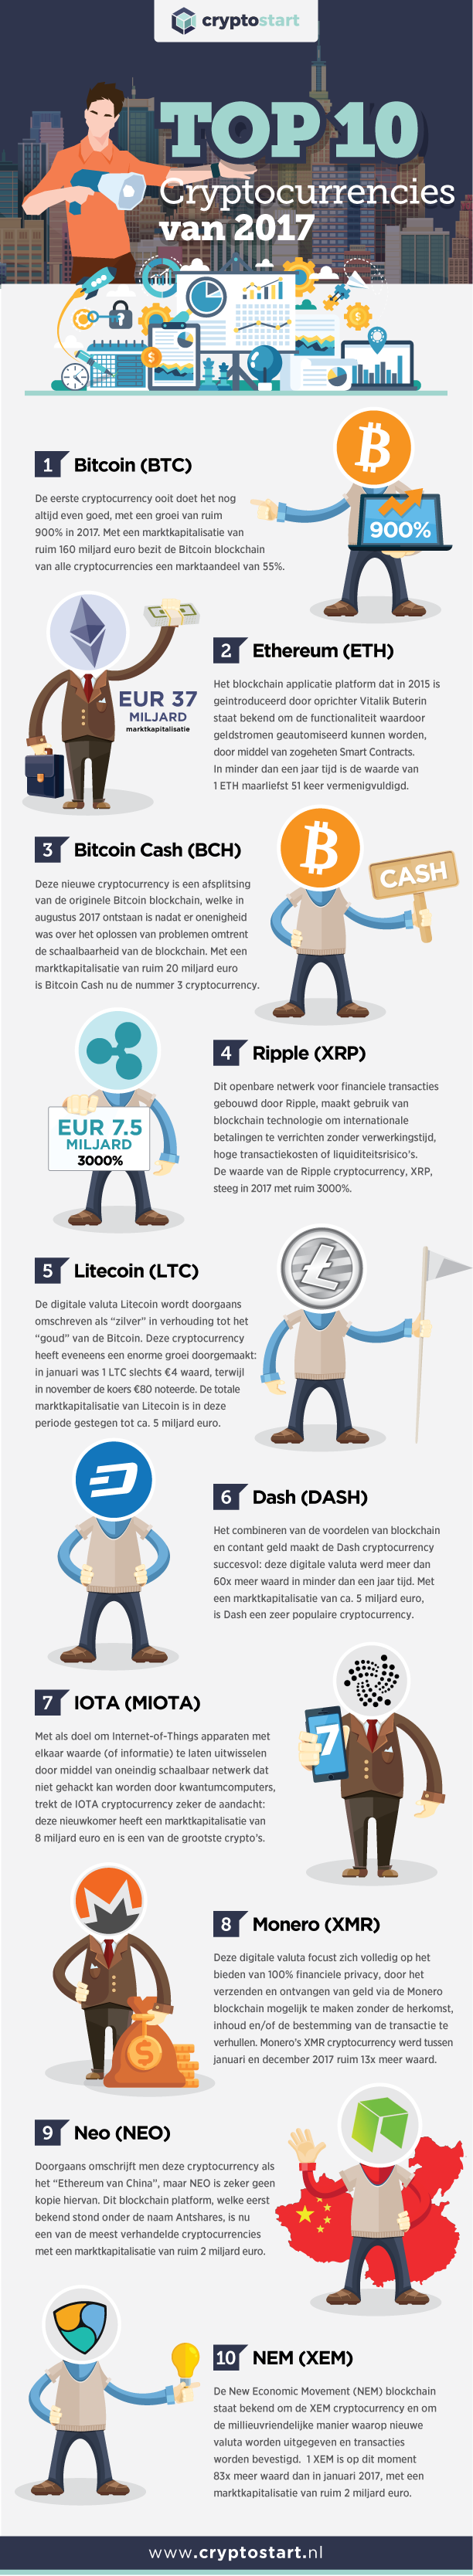 Infographic Cryptocurrency